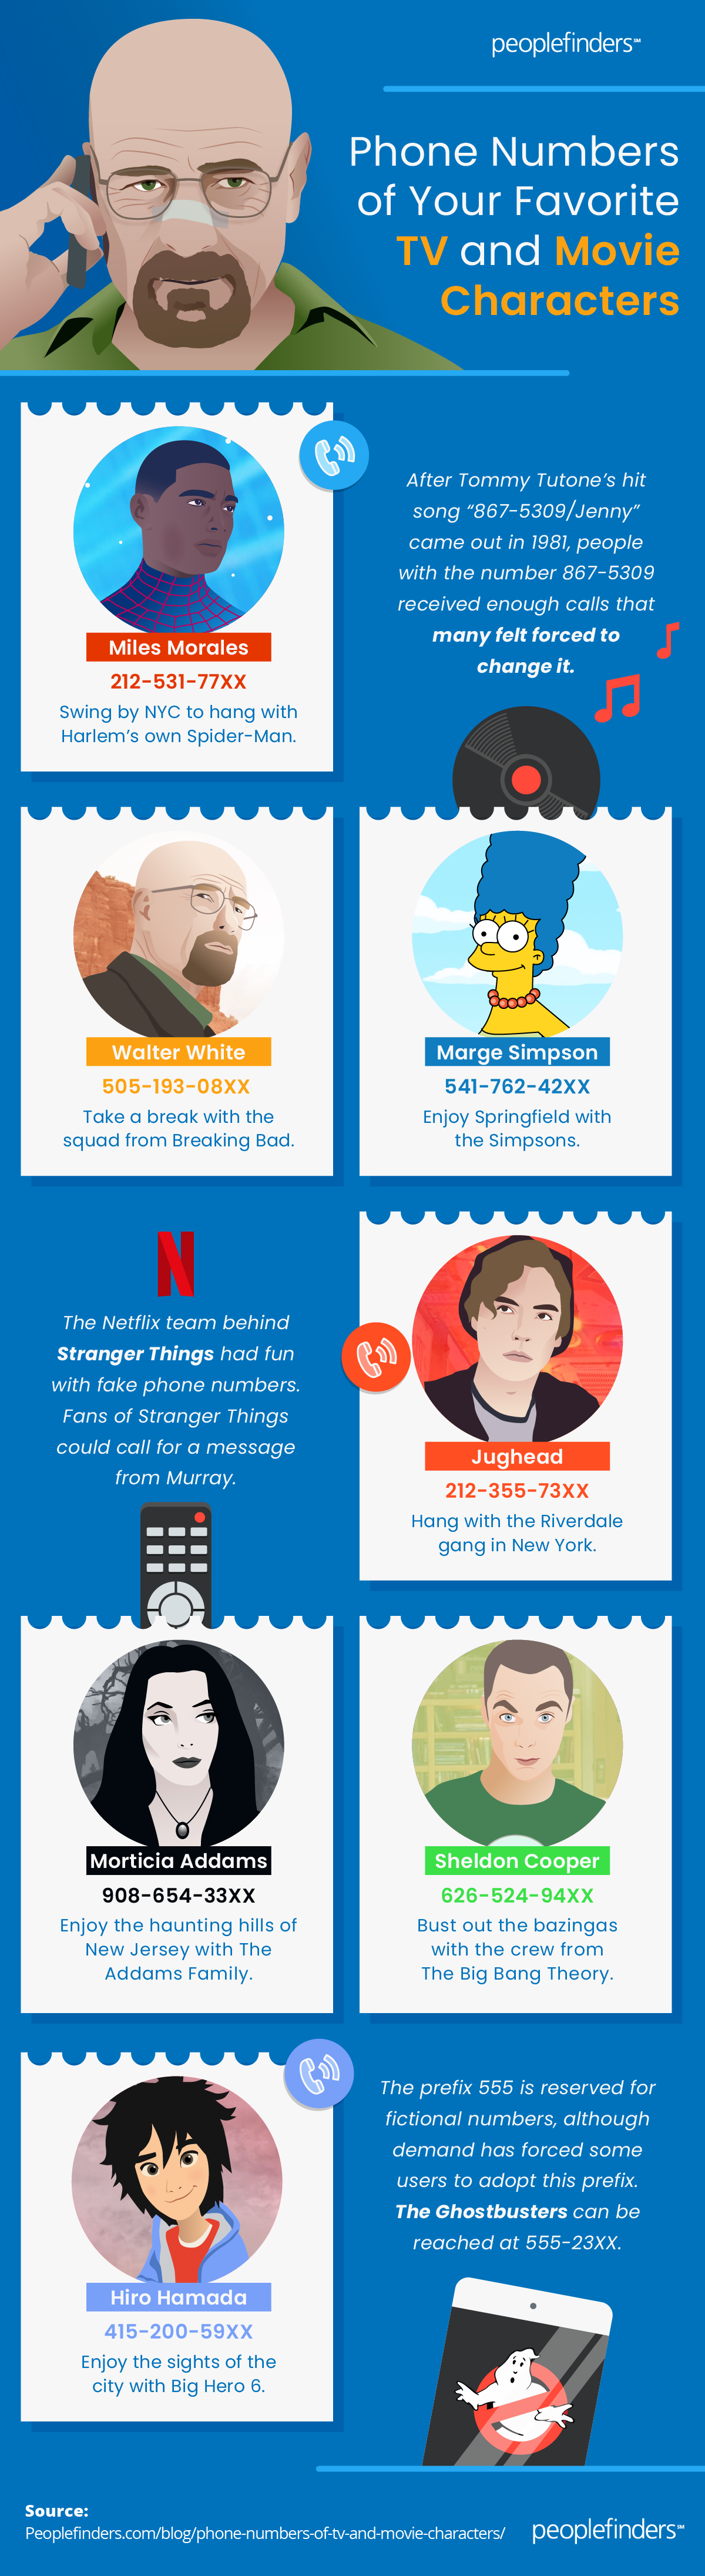 Phone Numbers of Your Favorite TV and Movie Characters